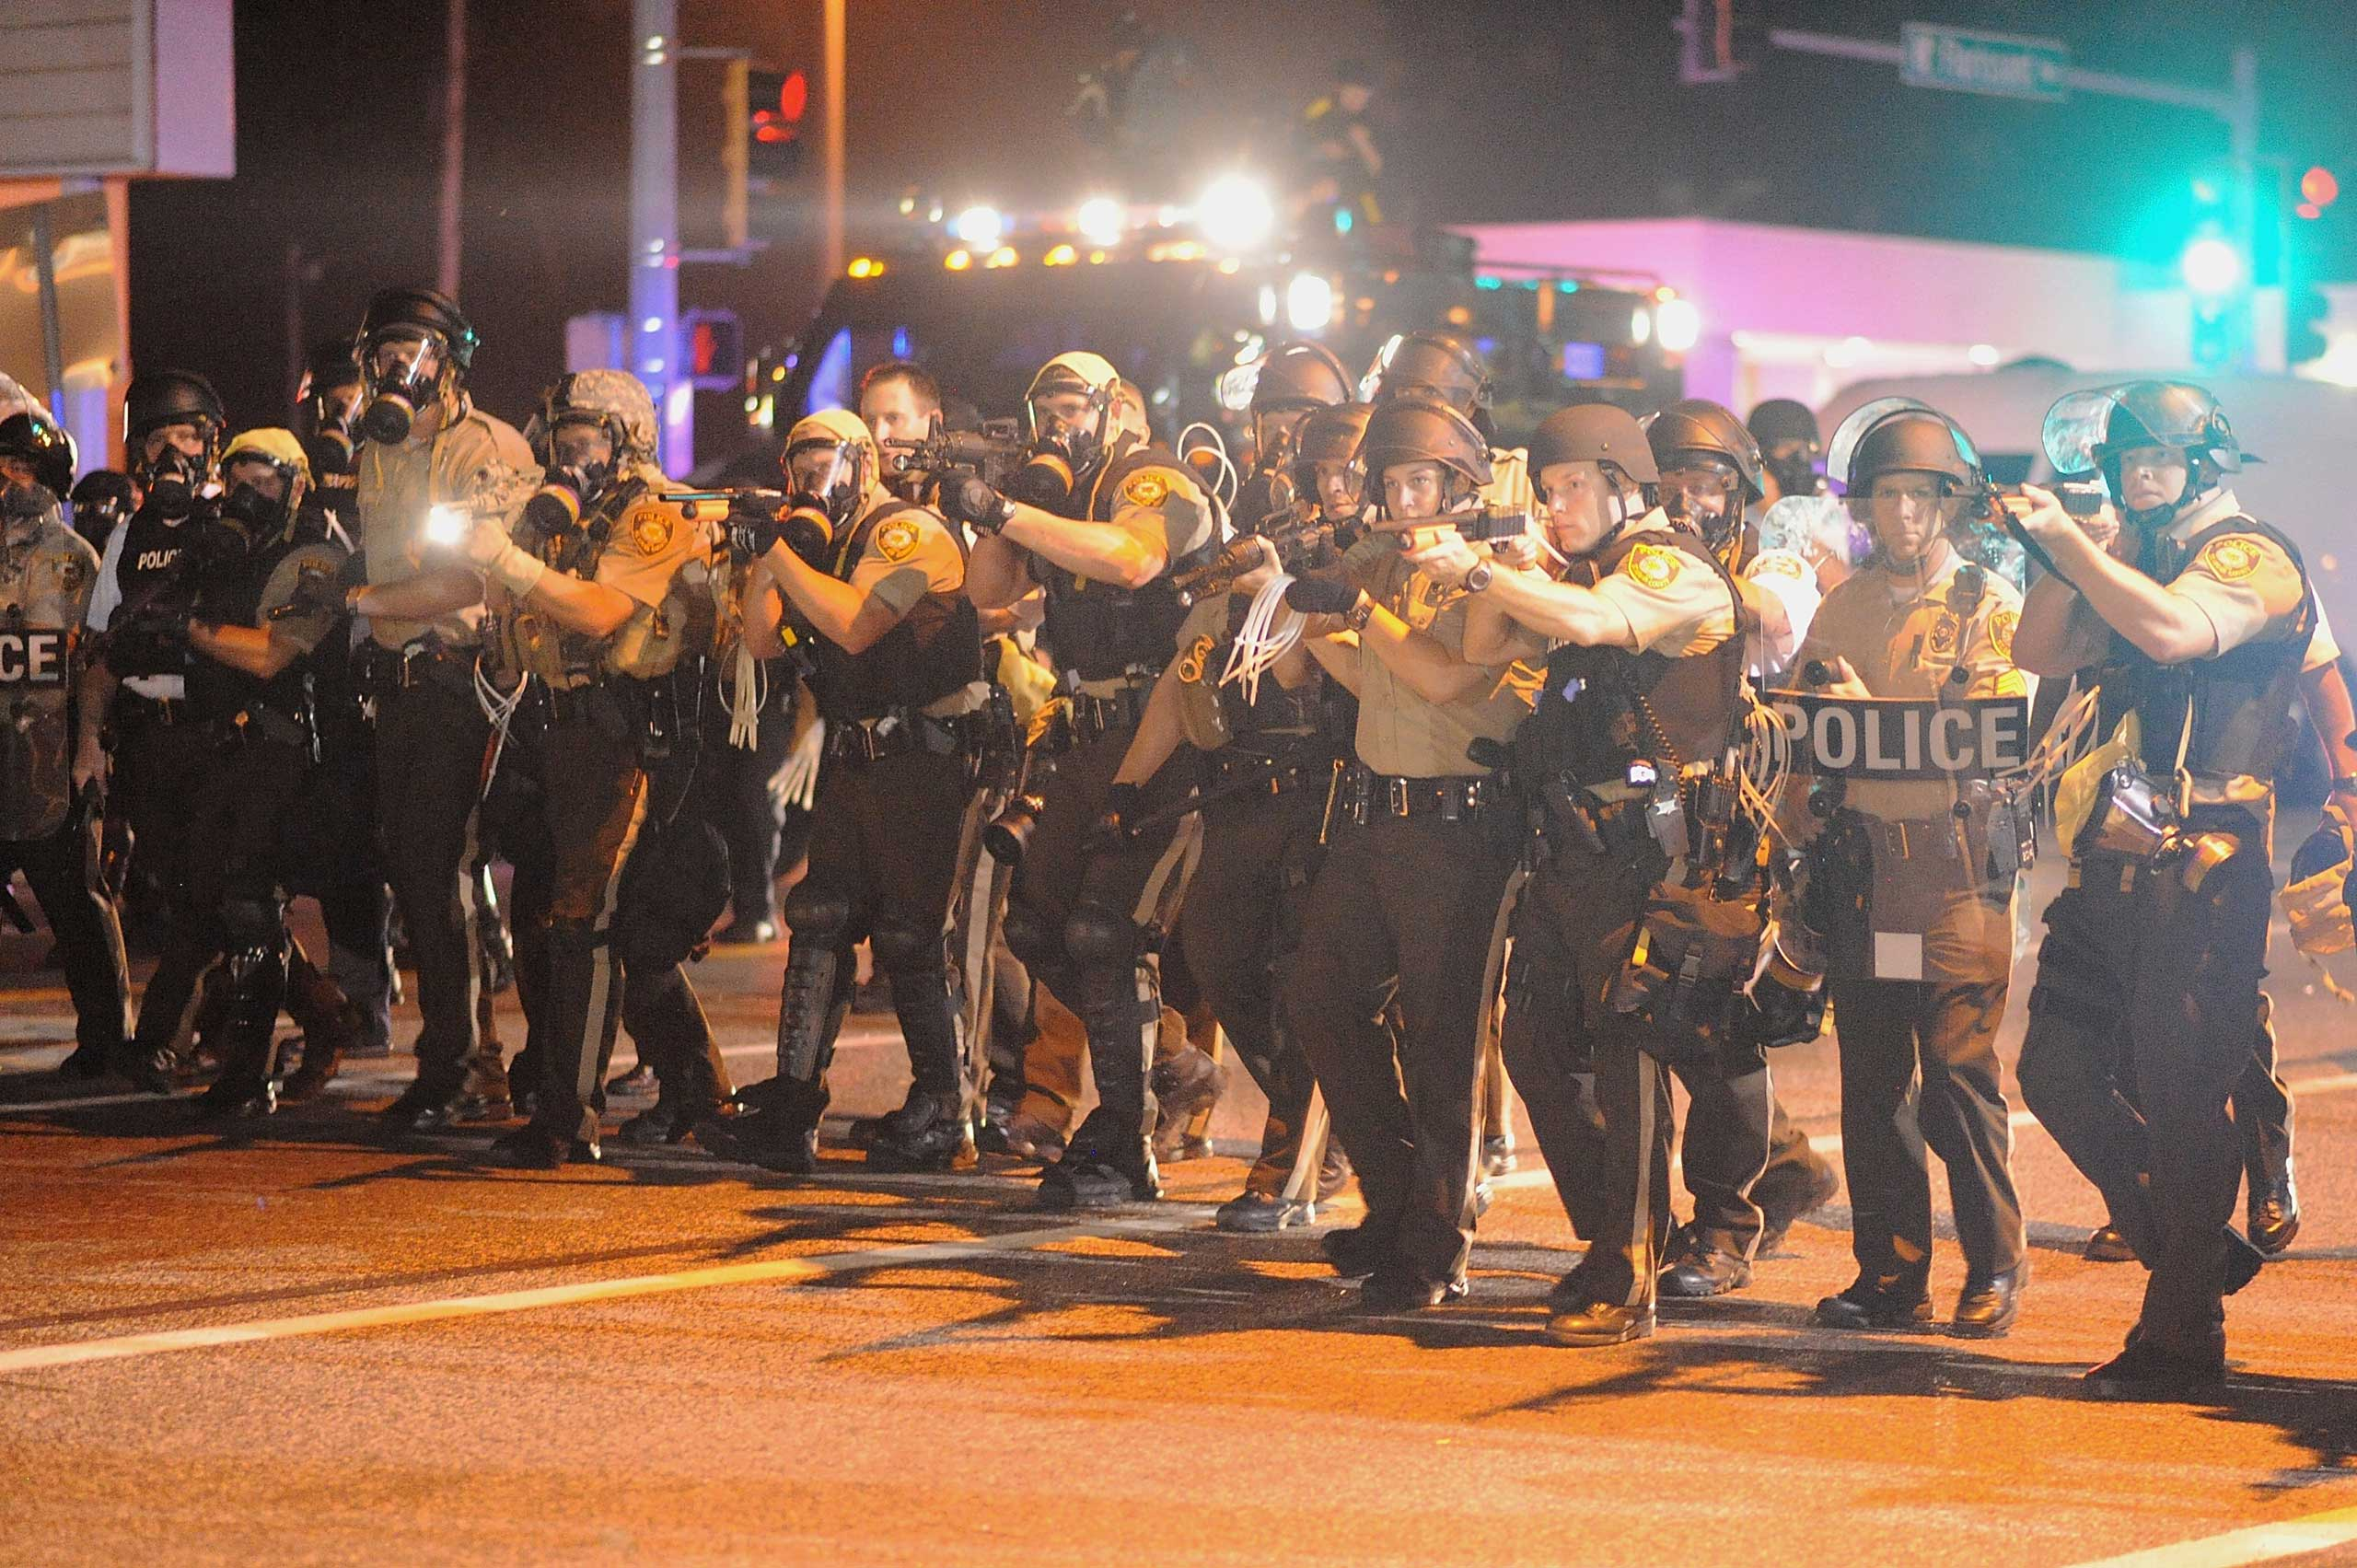 Law enforcement officers look on during a protest on West Florissant Avenue in Ferguson on Aug. 18, 2014.